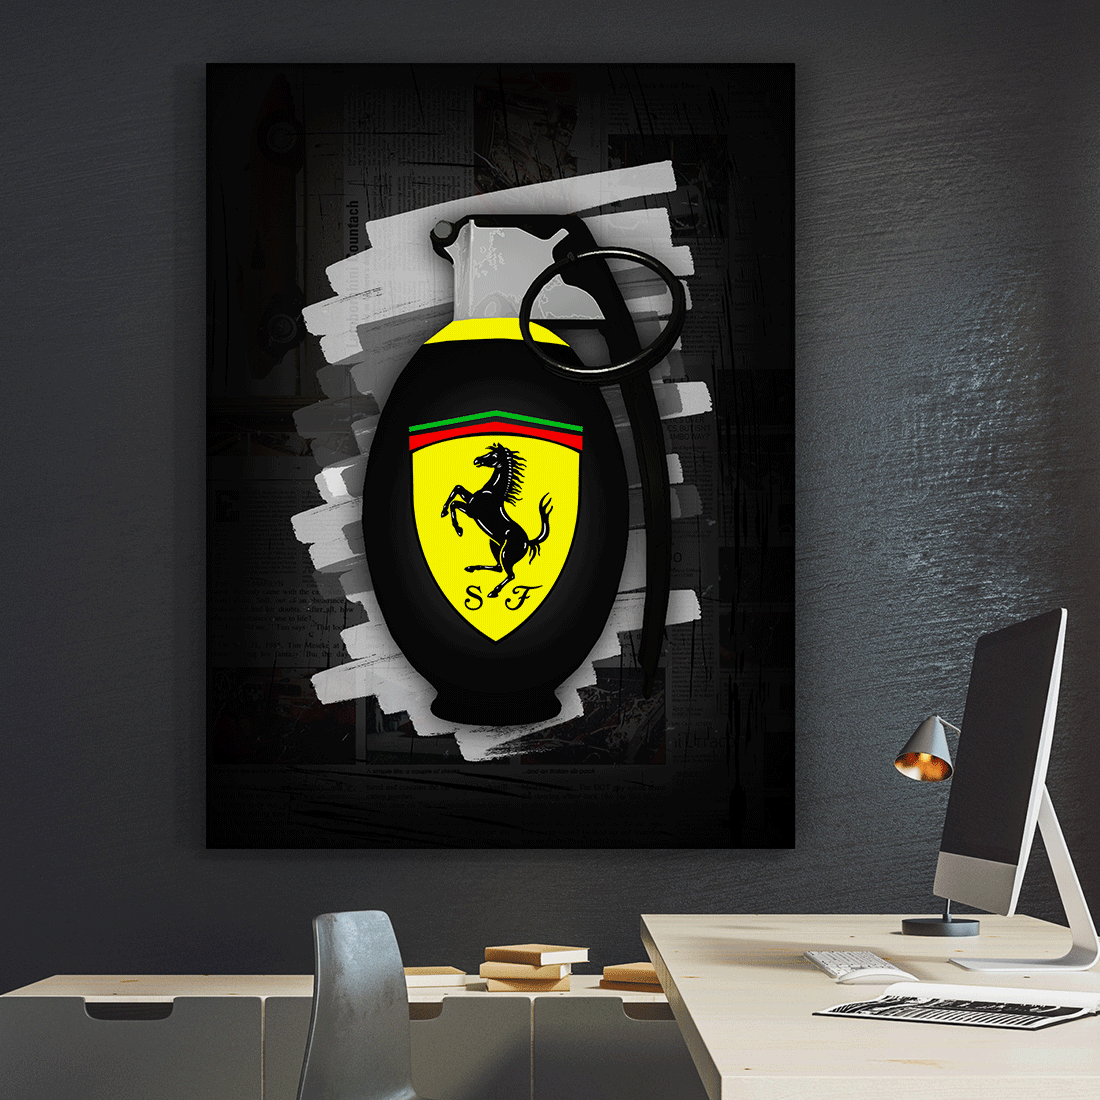 decor and design ferrari decor and design Ferrari Grenade - Iceberg Of Success